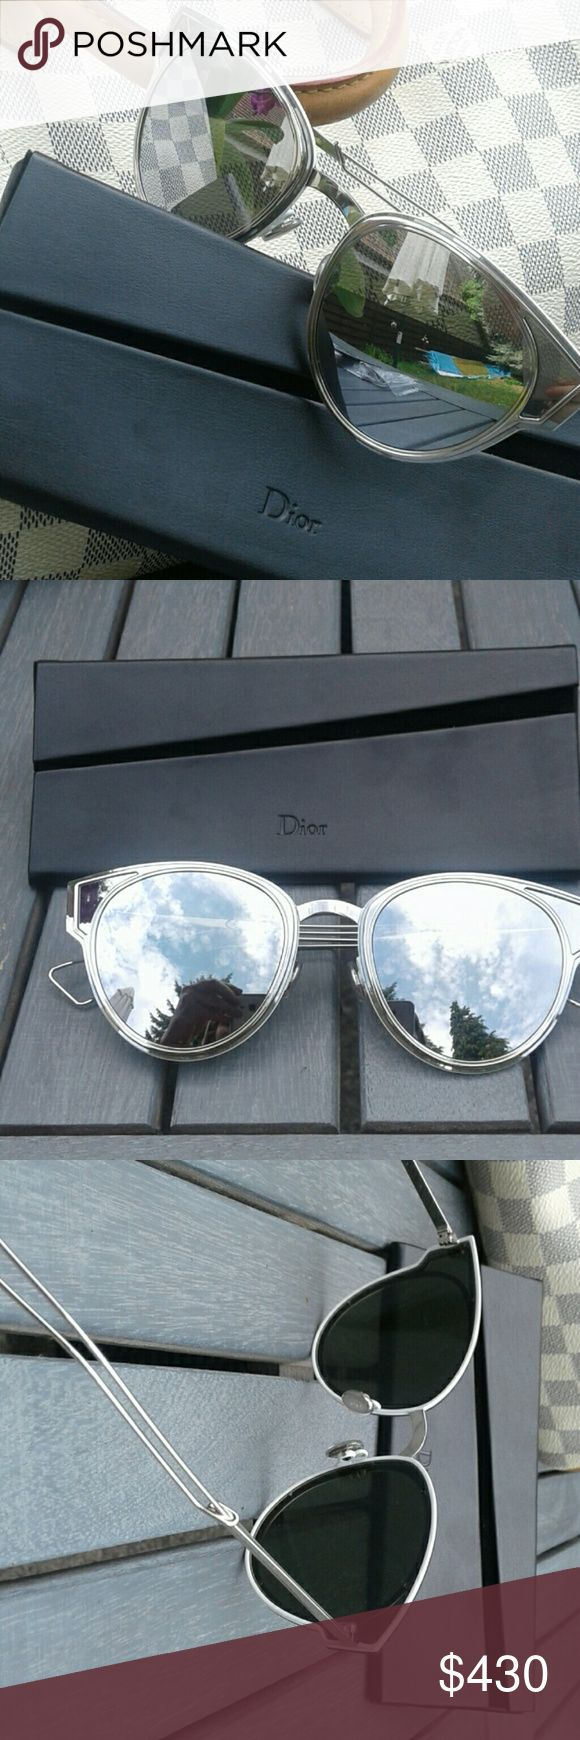 Authentic Dior sunglasses! Wonderful Dior sunglasses, 2017 model Sculpt! These are original Dior sunglasses that come with box, case, microfiber cloth and of course a certificate of authenticity. Please ne aware that I can't ship before July 24th.  Made i https://tmblr.co/ZRlNZd2NZw2a3